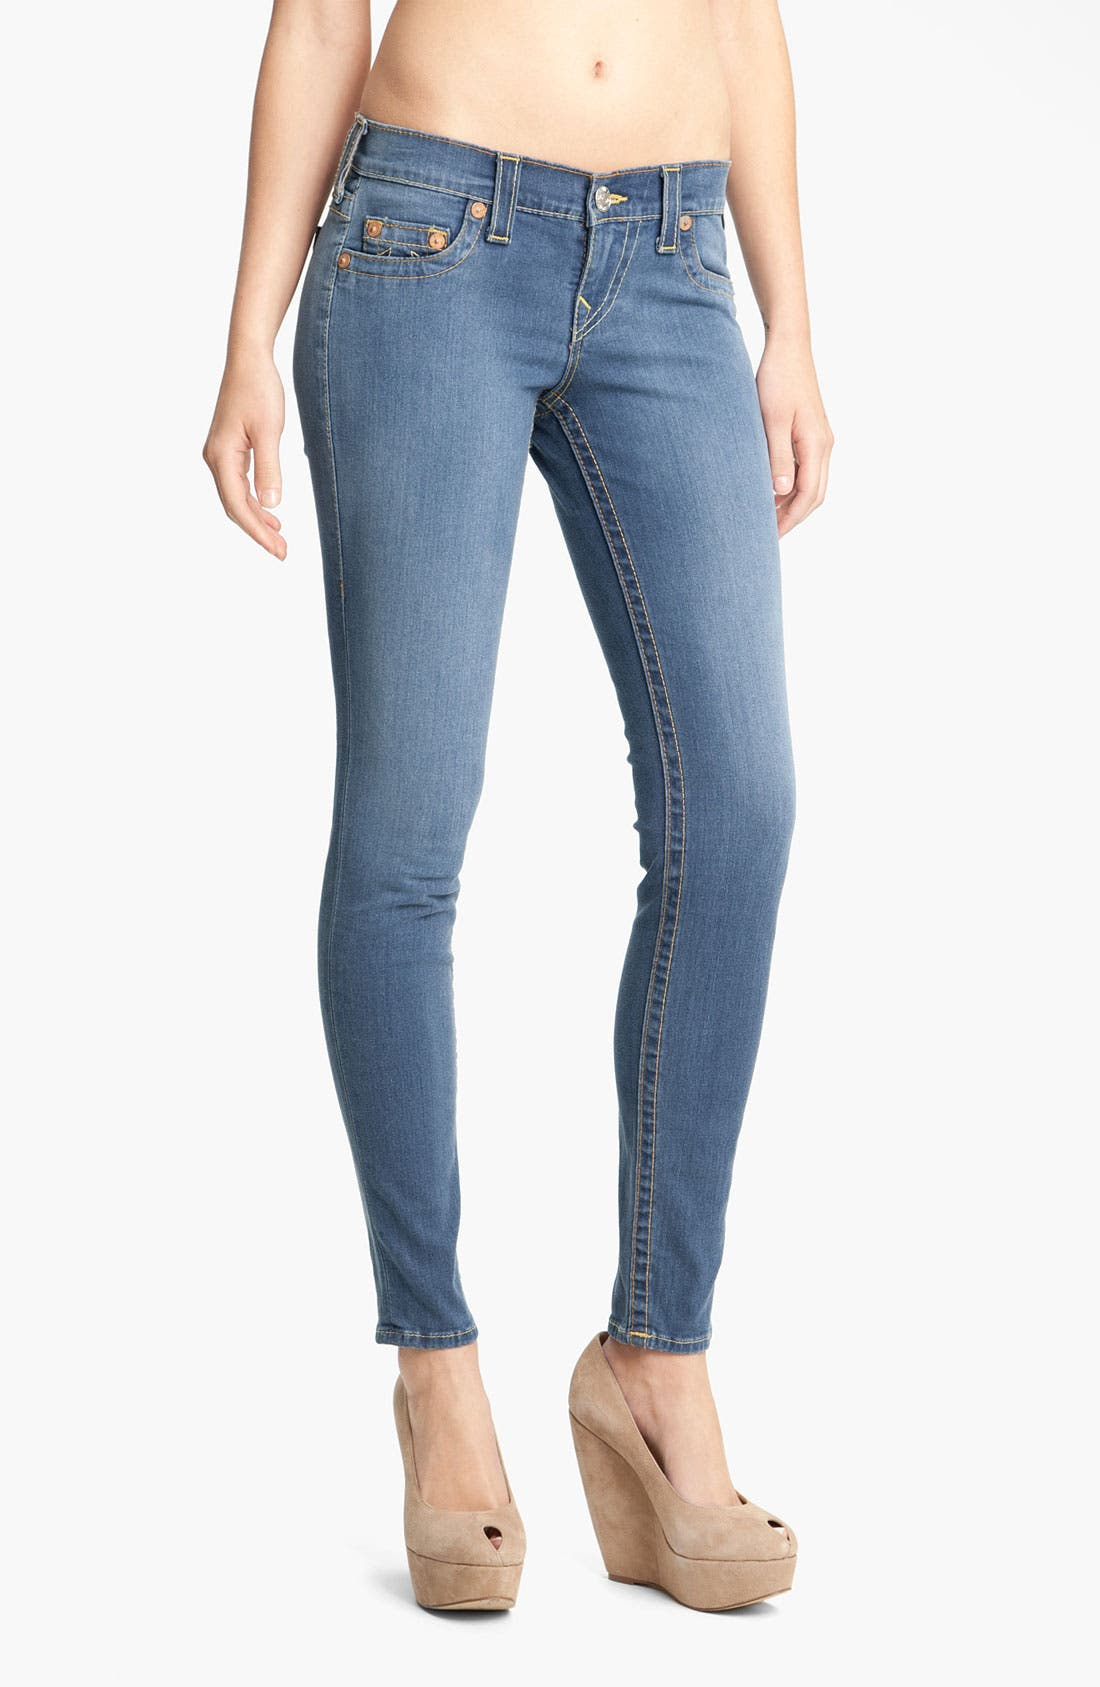 Alternate Image 1 Selected - True Religion Brand Jeans 'Casey' Skinny Stretch Jeans (Stingray)